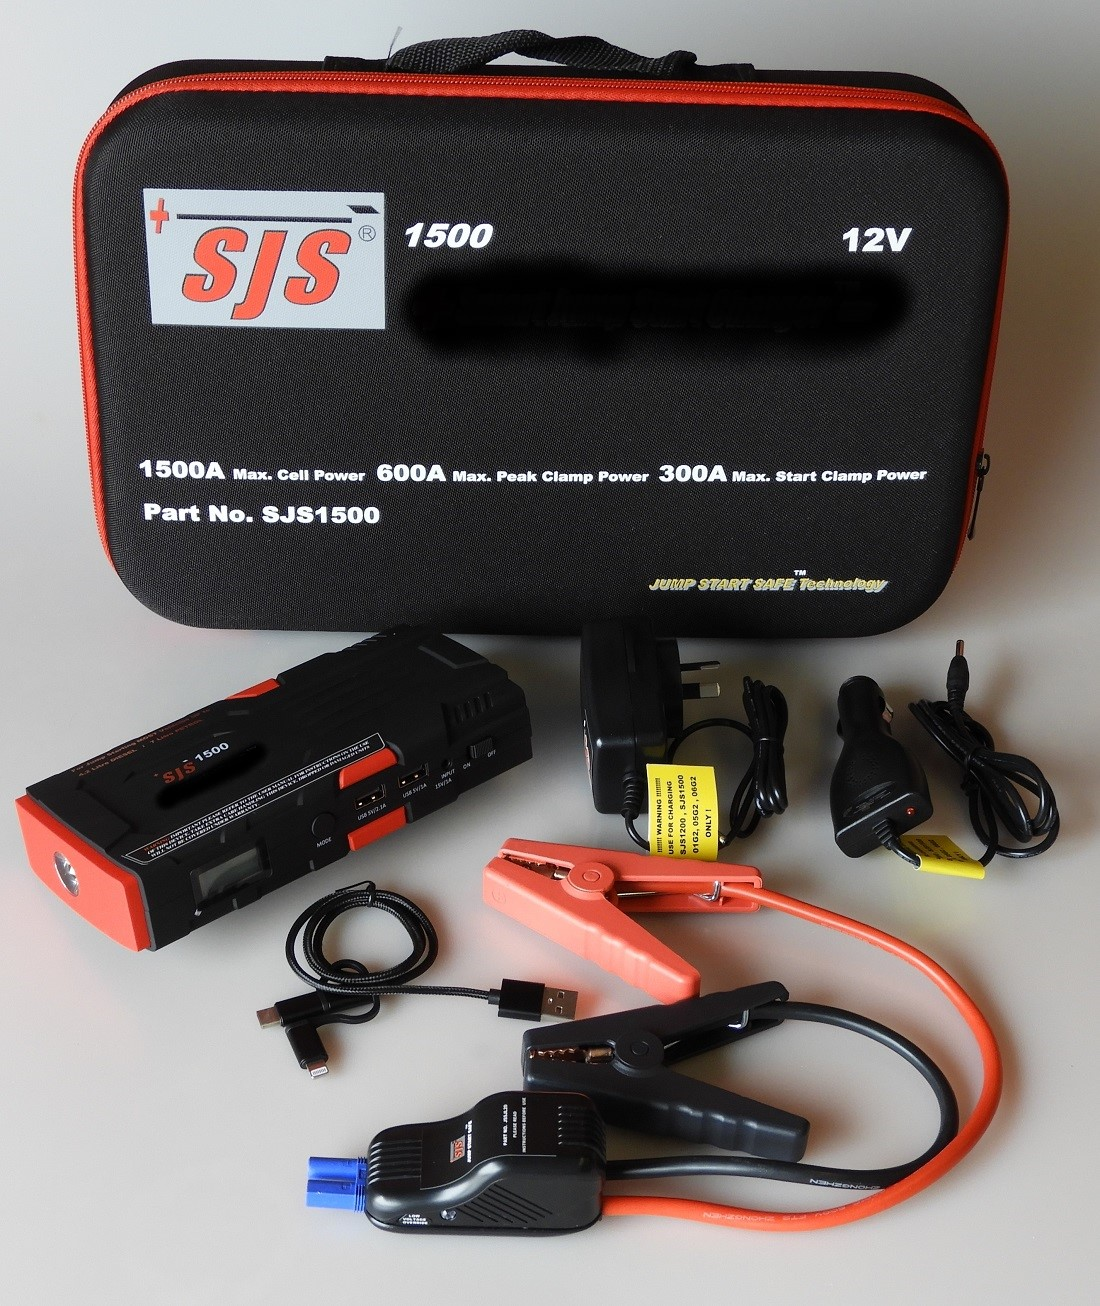 Sjs1500 Personal Power Pack Jump Starter 1500amp Car Battery Charger With Shortcircuit Protection For Safe Charging